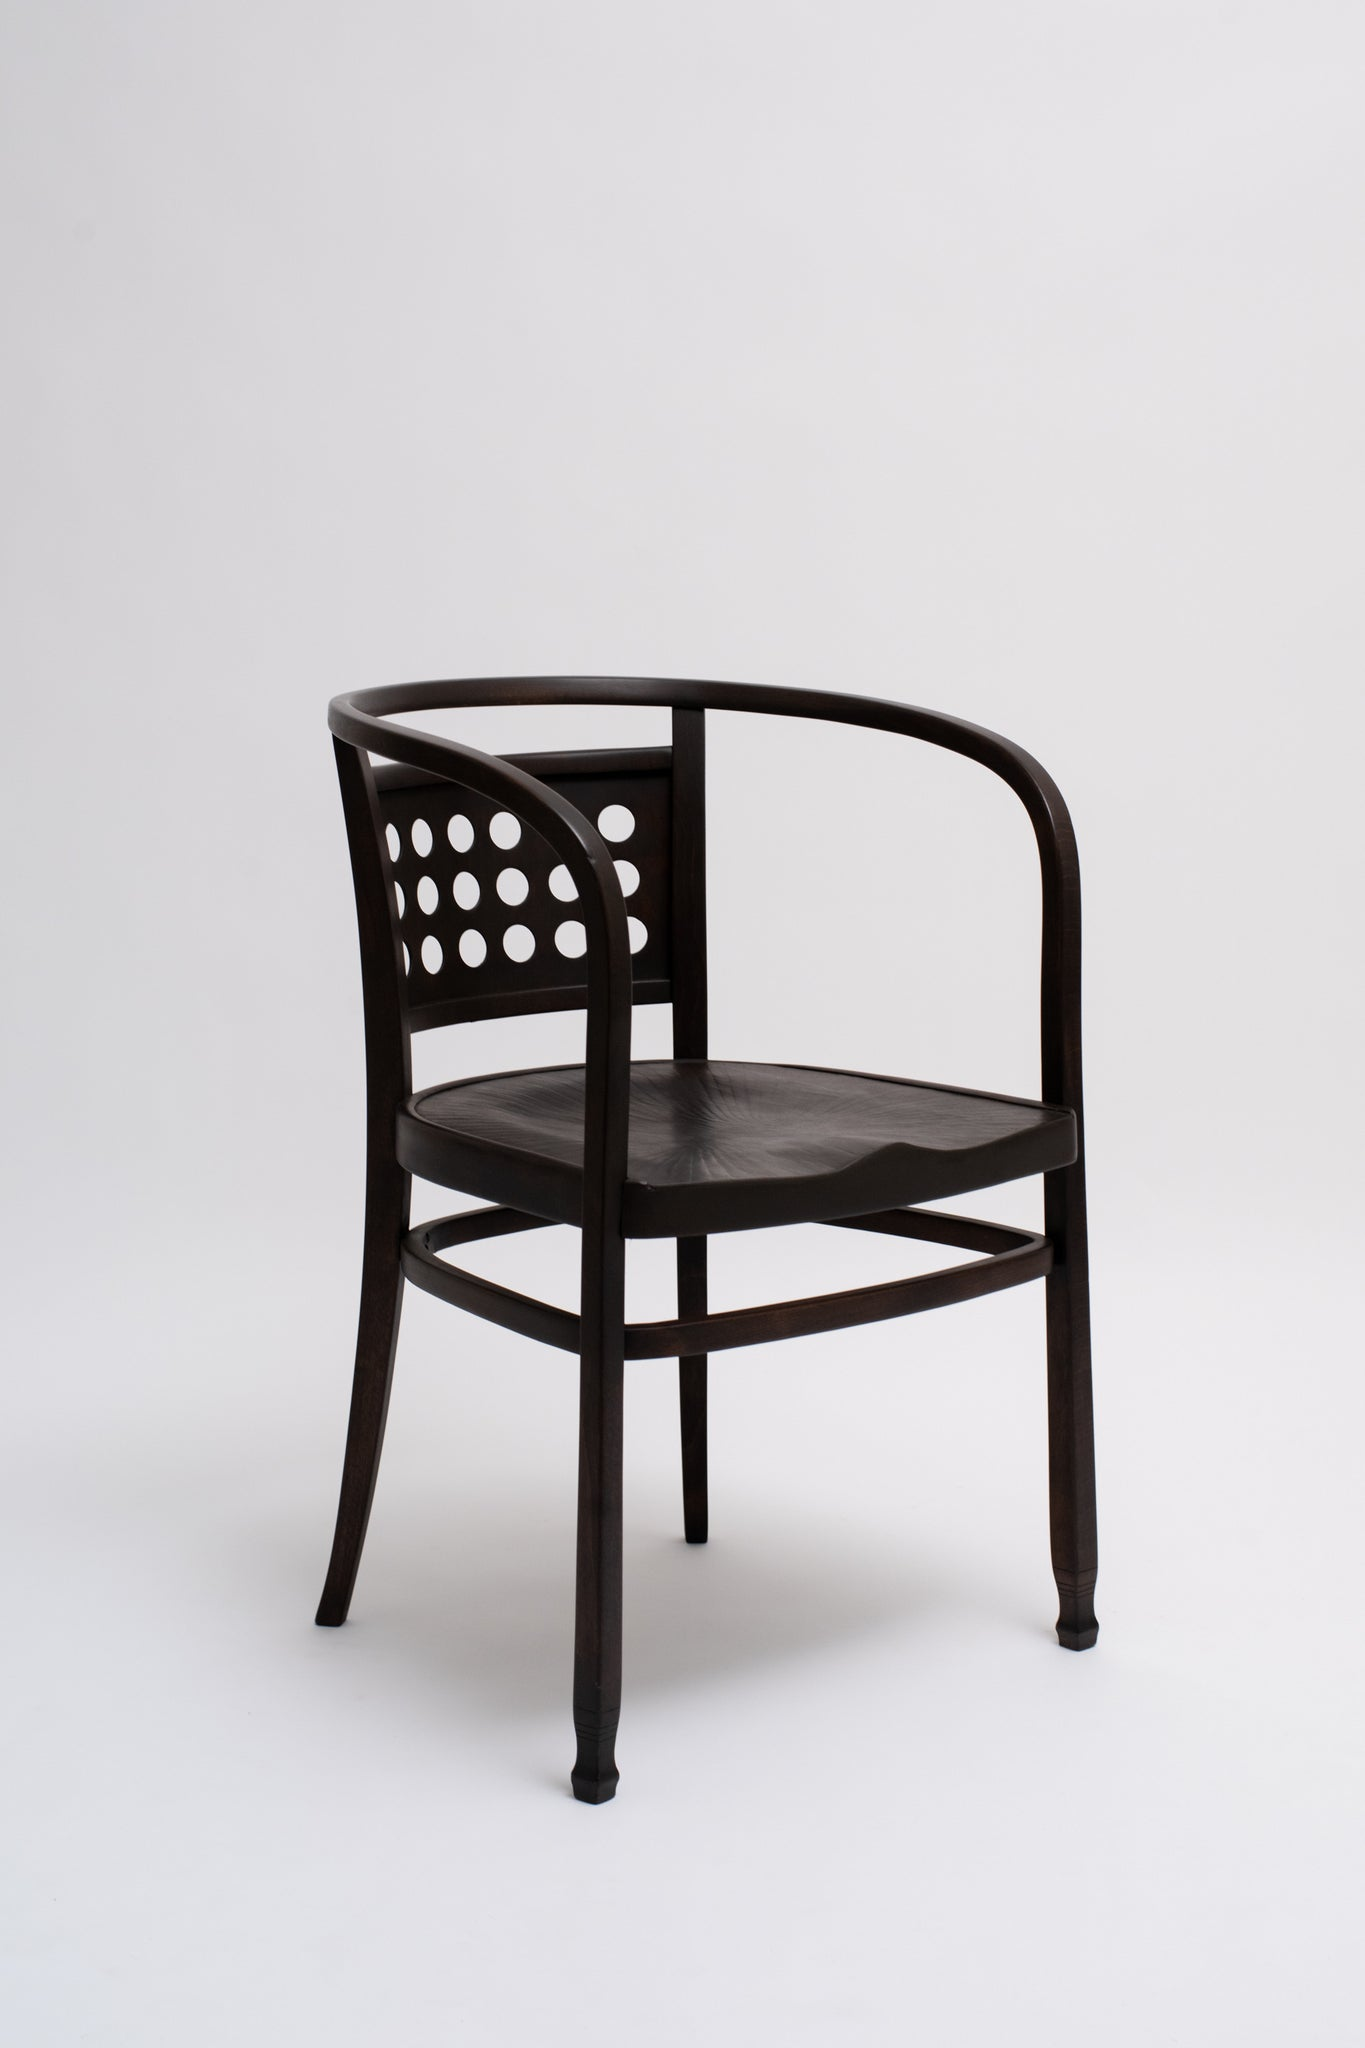 ARMCHAIR NO. 721. OTTO WAGNER, C. 1903